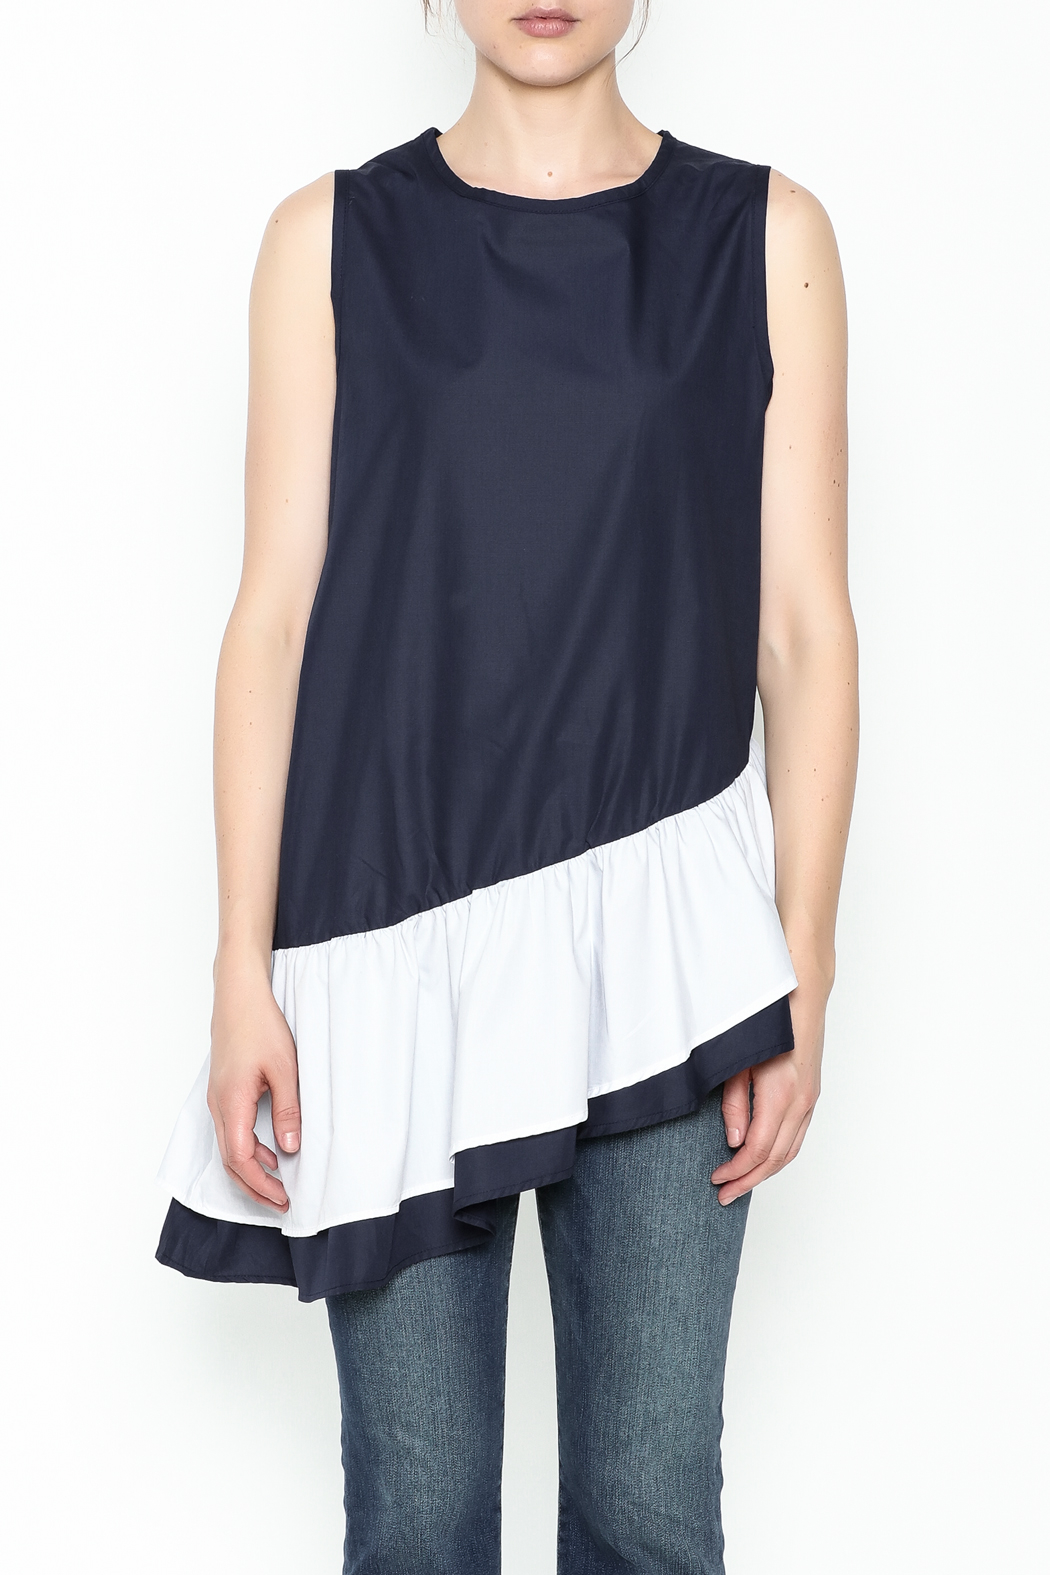 Pink Penguin Multicolor Asymmetry Top - Front Full Image